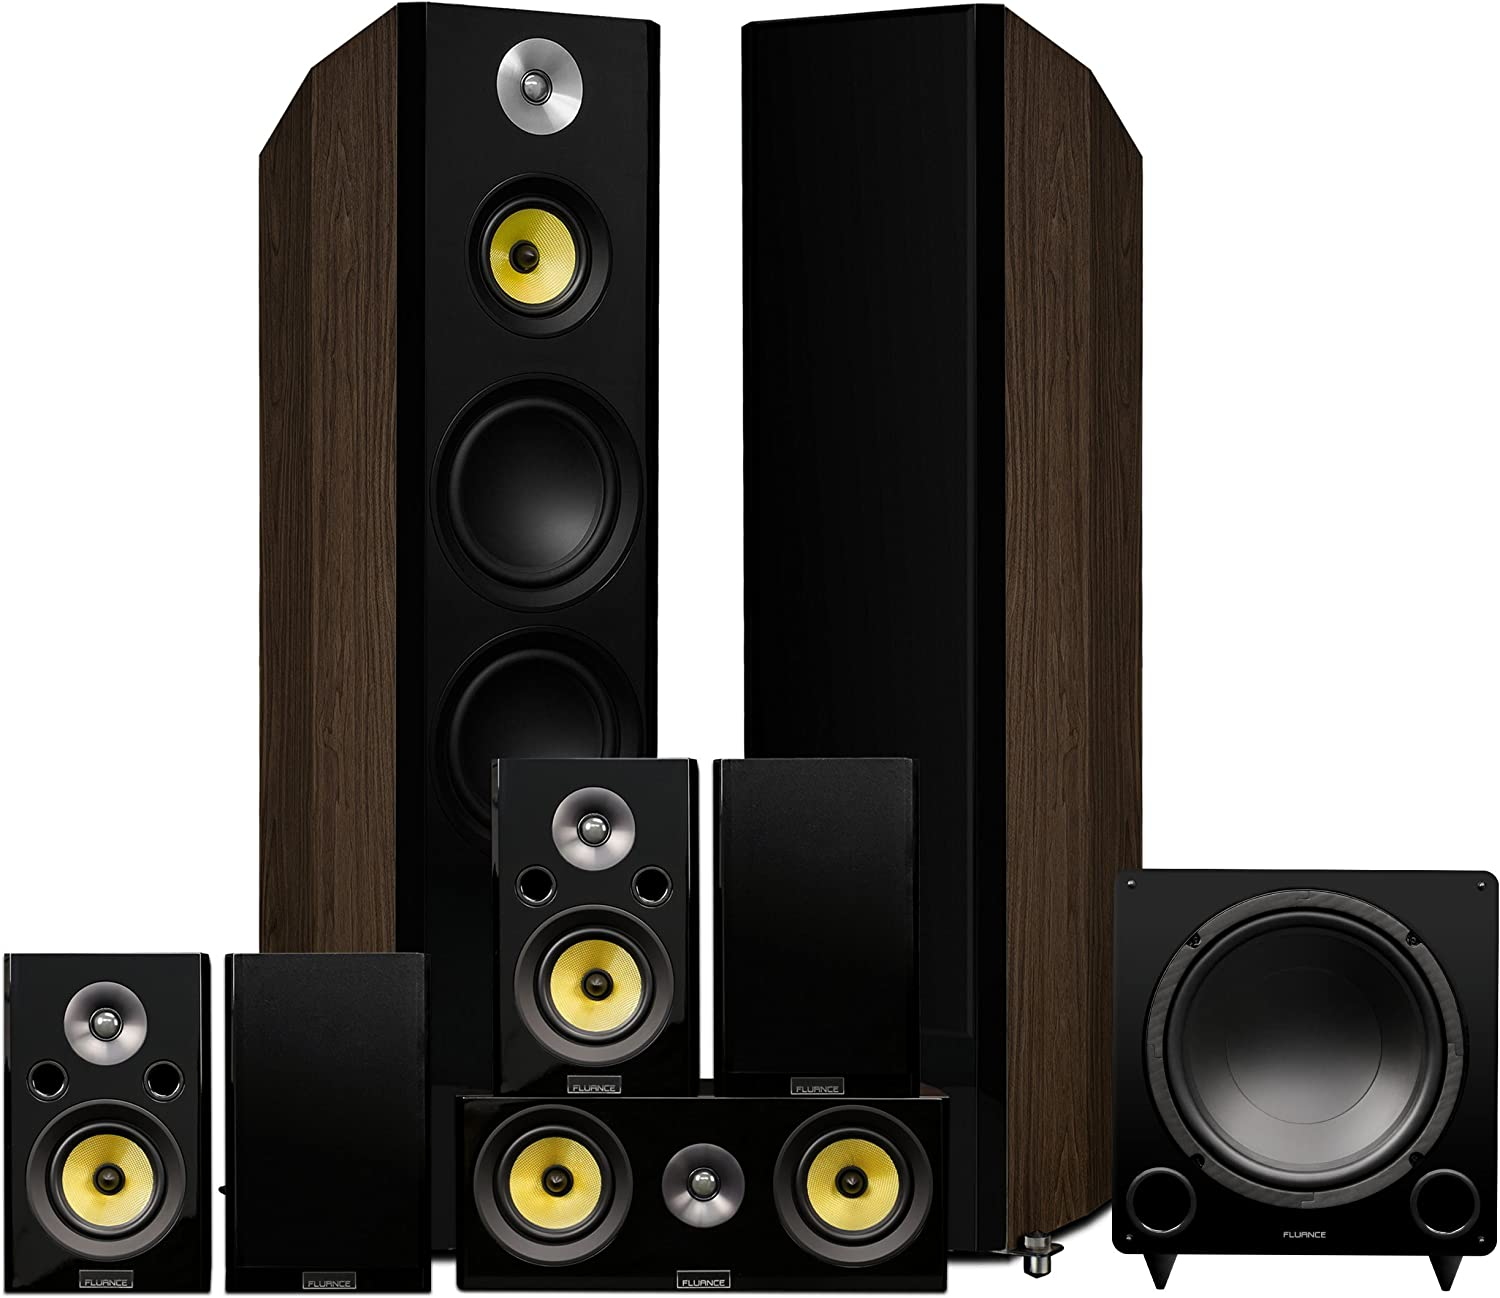 best 7.1 home theater system for a small room